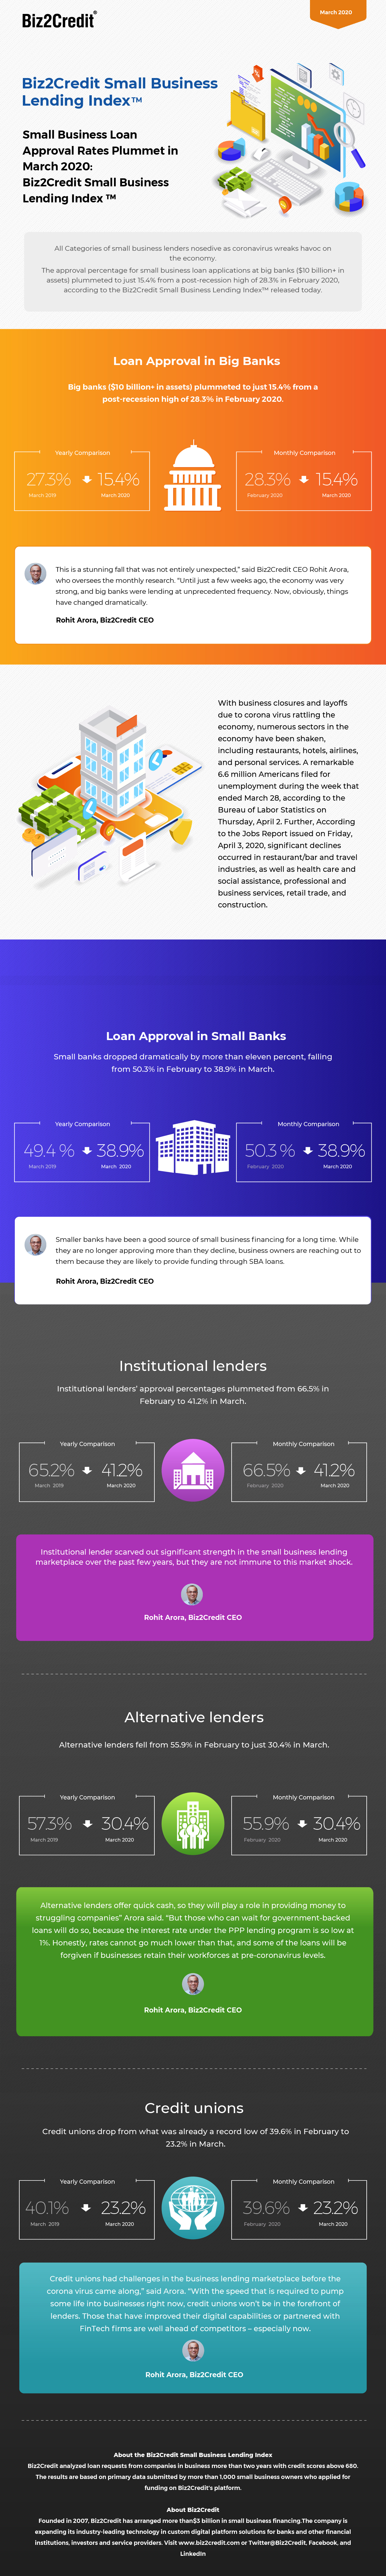 March 2020 Lending Index Infographic